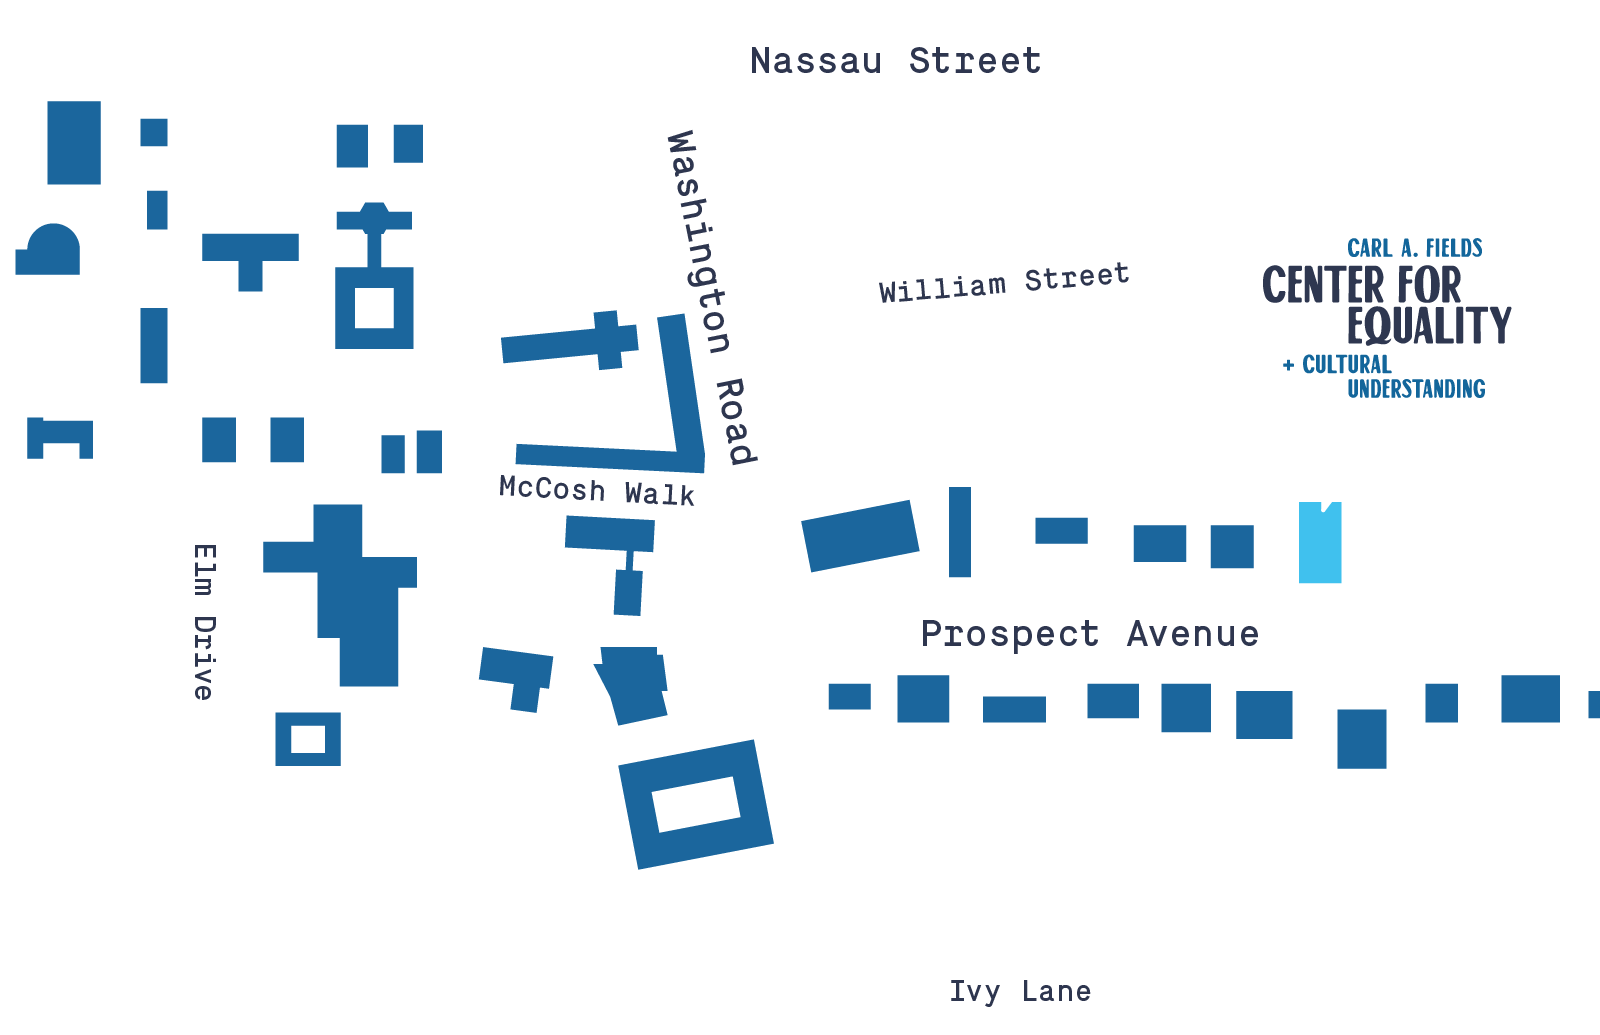 Campus map showing location of Fields Center